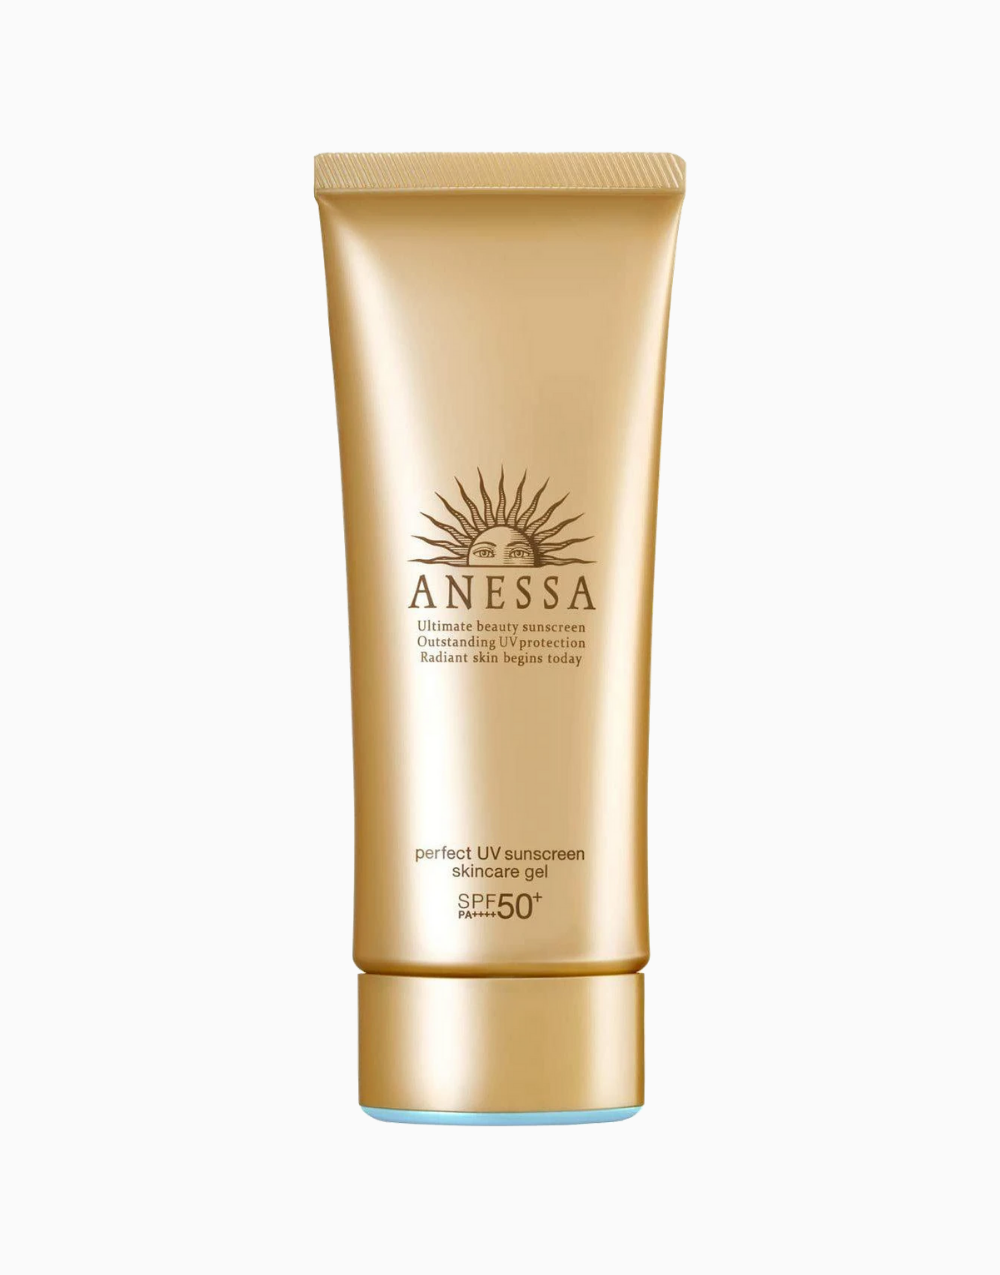 Perfect UV Sunscreen Skincare Gel SPF 50+ PA++++ (90g) by Anessa